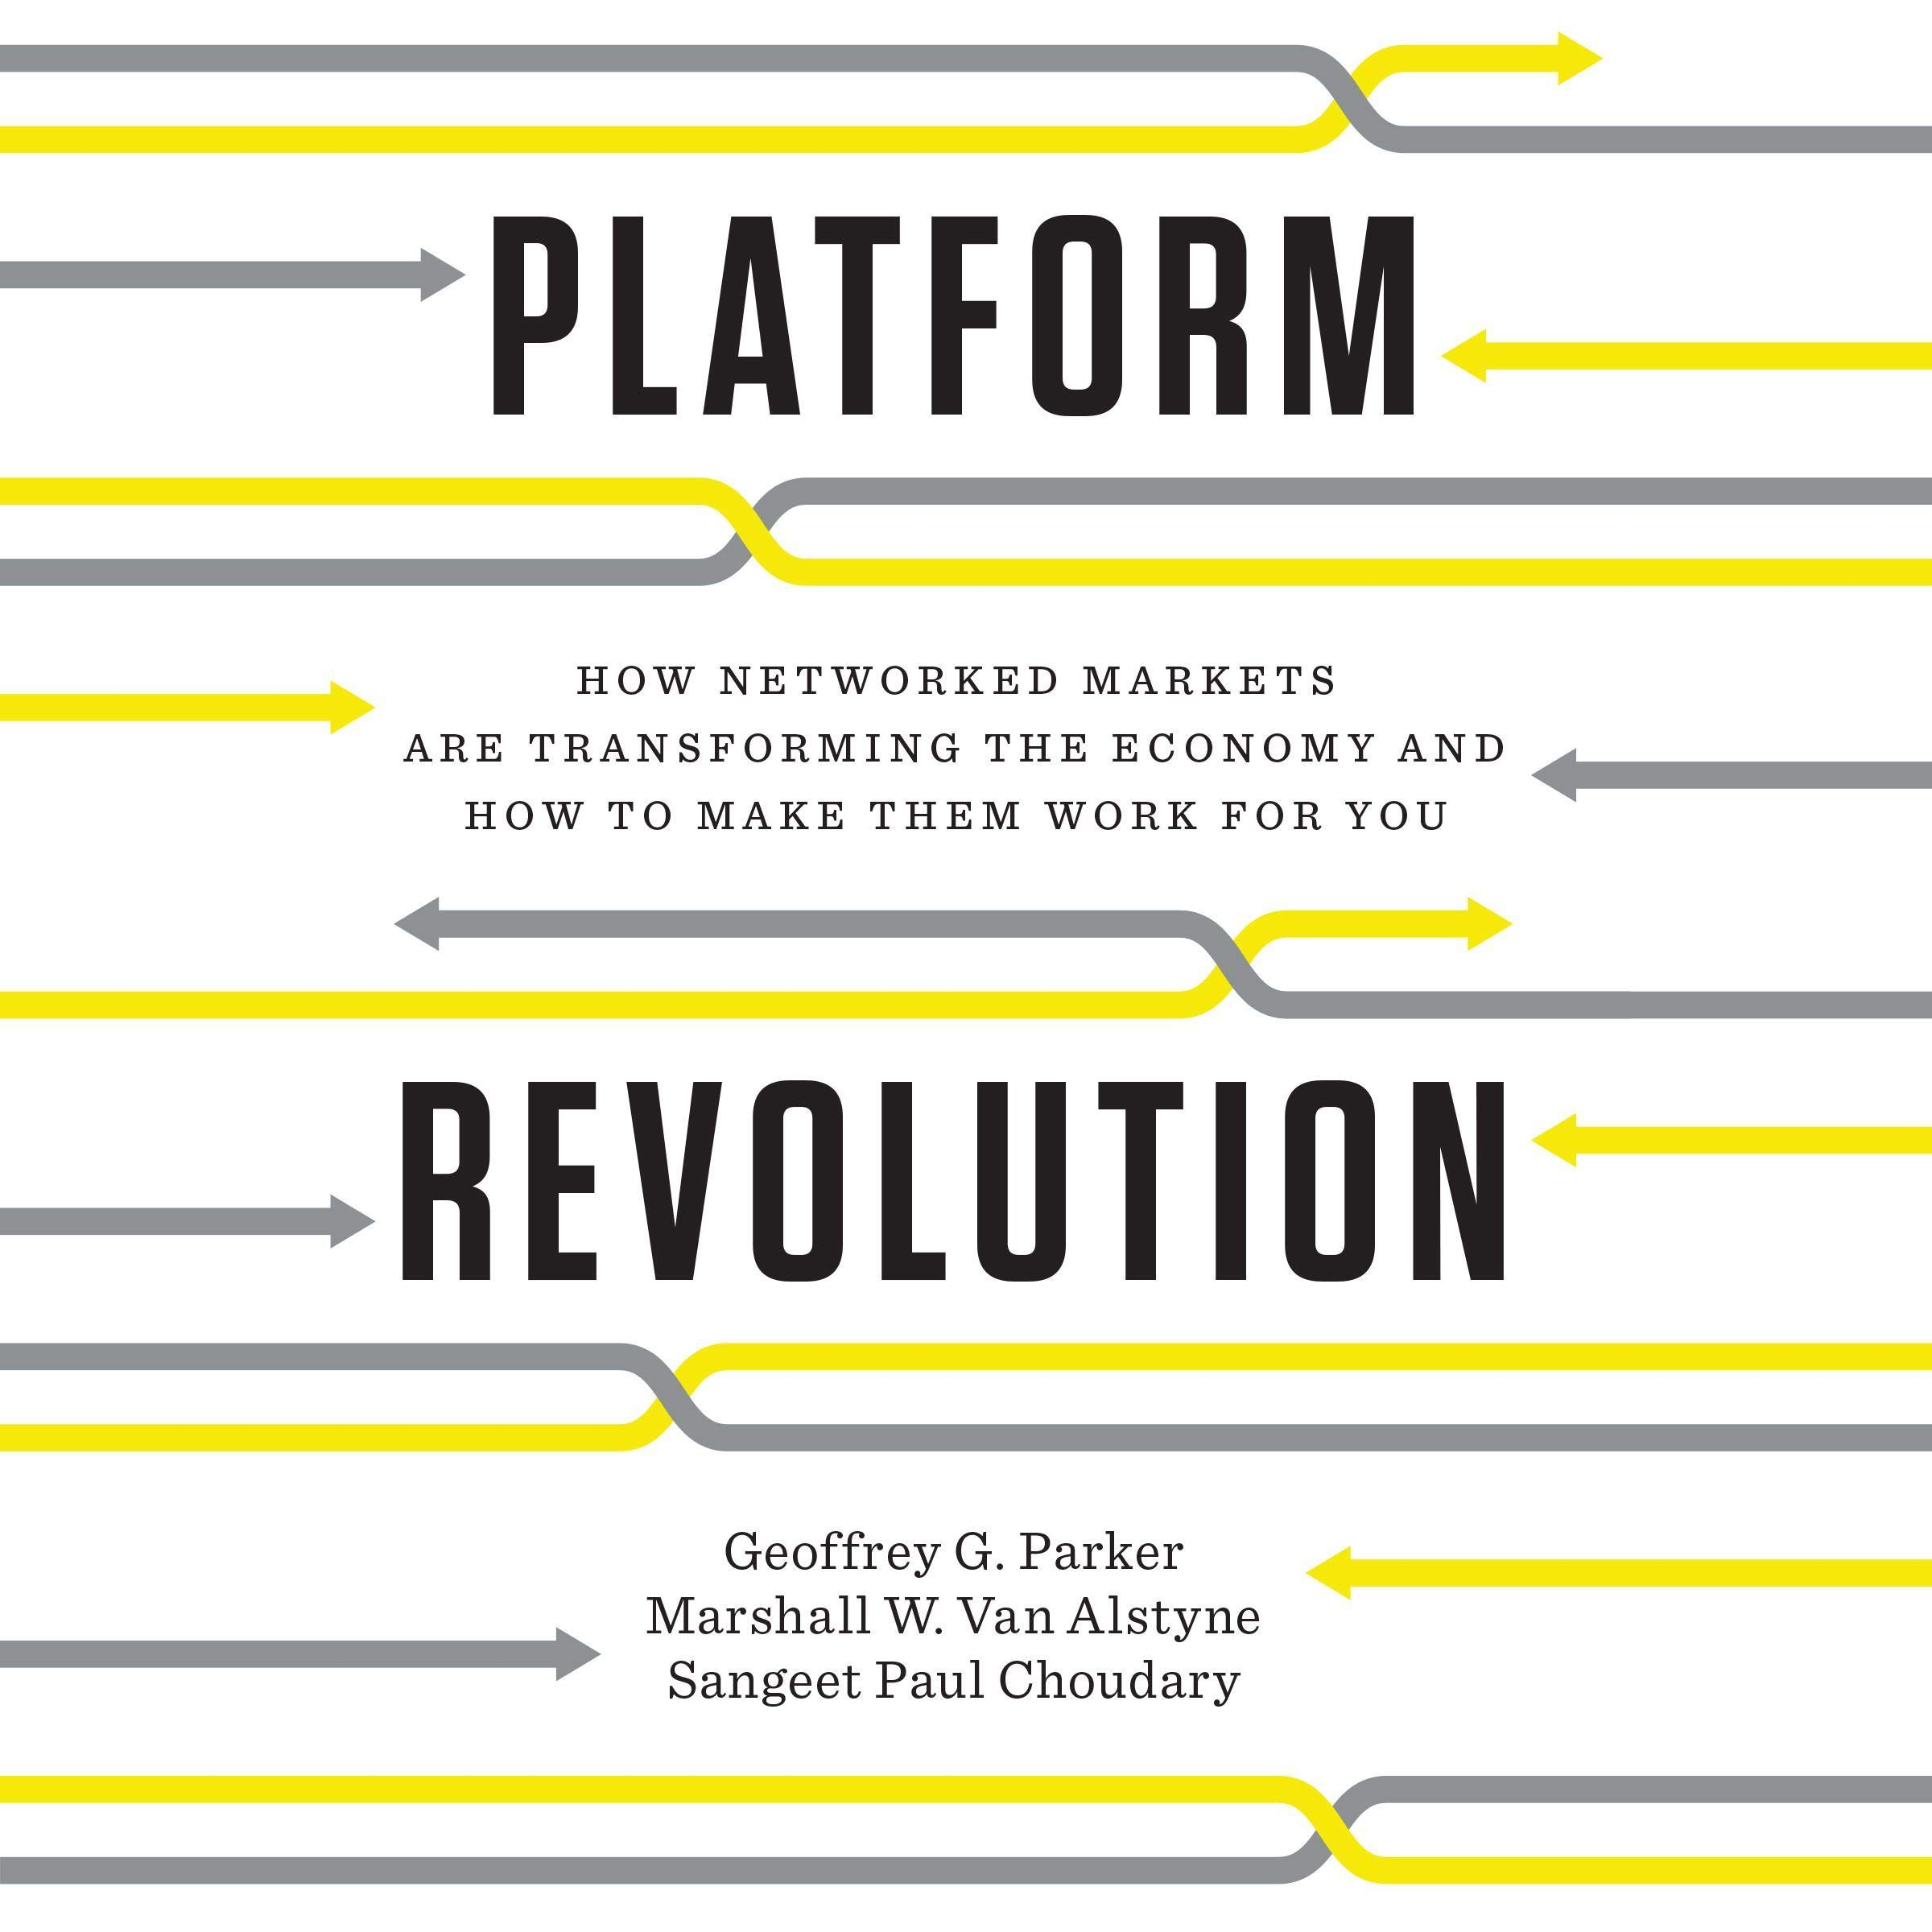 Triaaievnicpxm Pdf Platform Revolution How Networked Markets Are Transforming The Economy And How To Make Them Work For You Download Fghrtjykgdfs